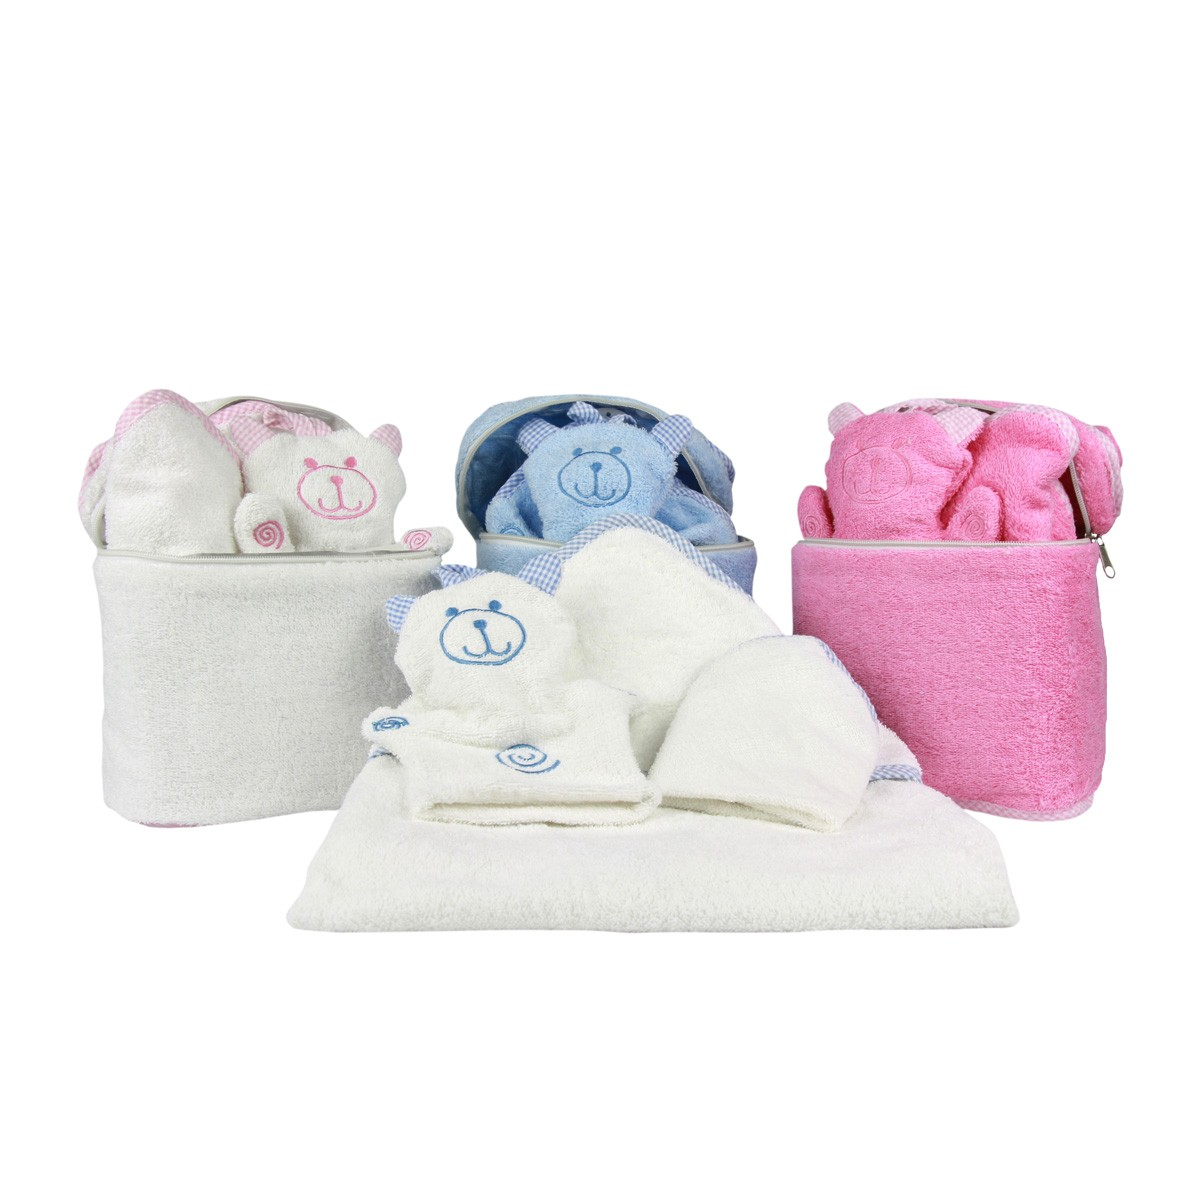 Baby Shower Gift Ideas Practical : Practical baby shower gift ideas mociw